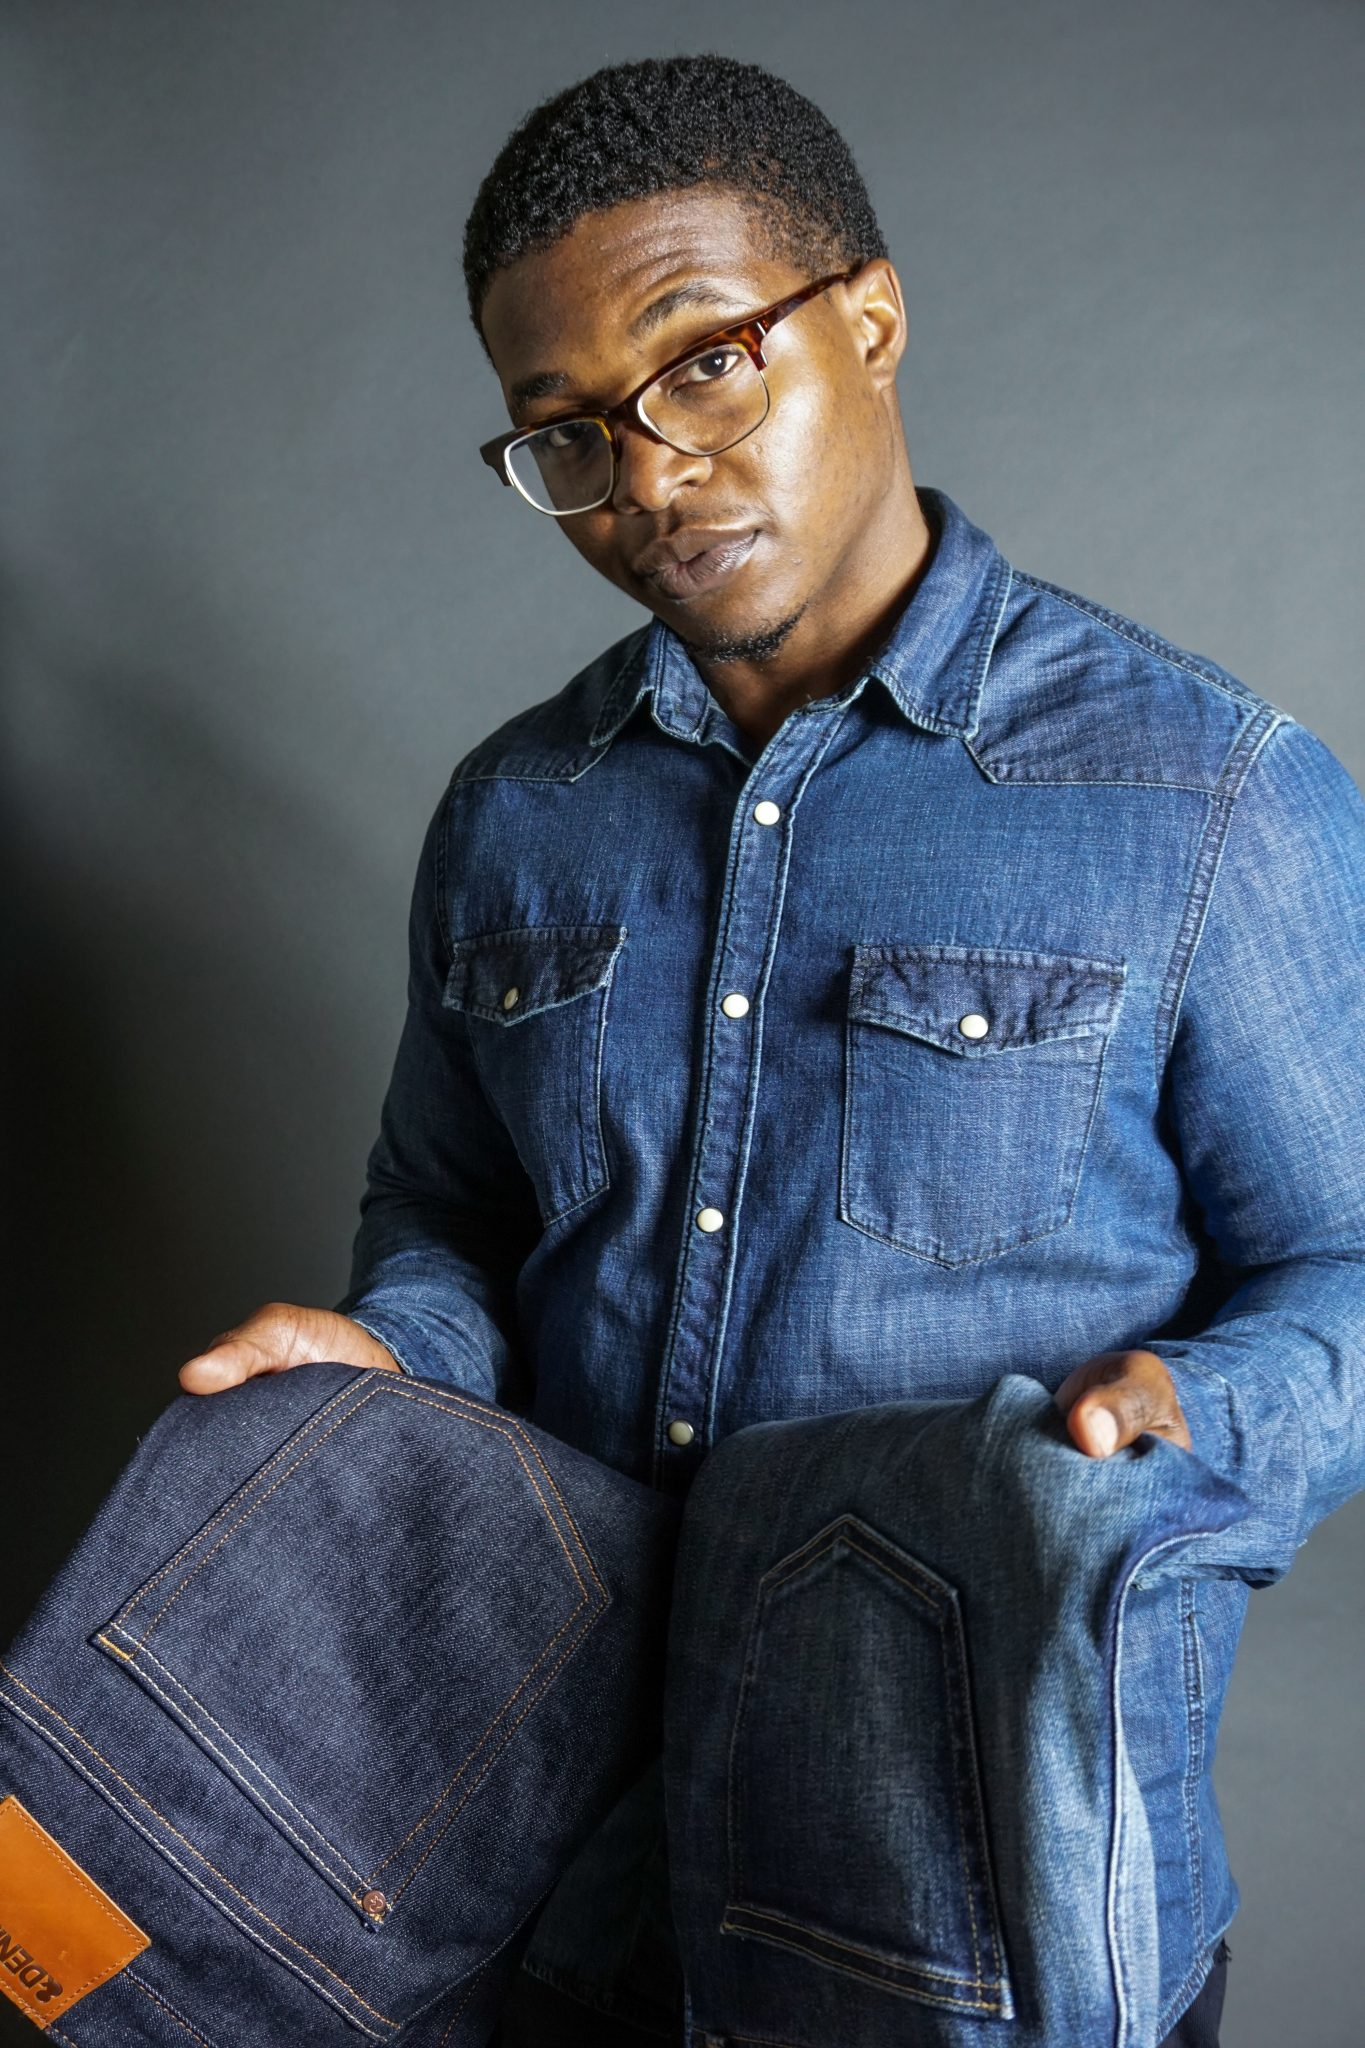 Dapper-Advisor-Akil-McLeod-black-man-African-American-difference-denim-week-shirt-jeans-raw-selvedge